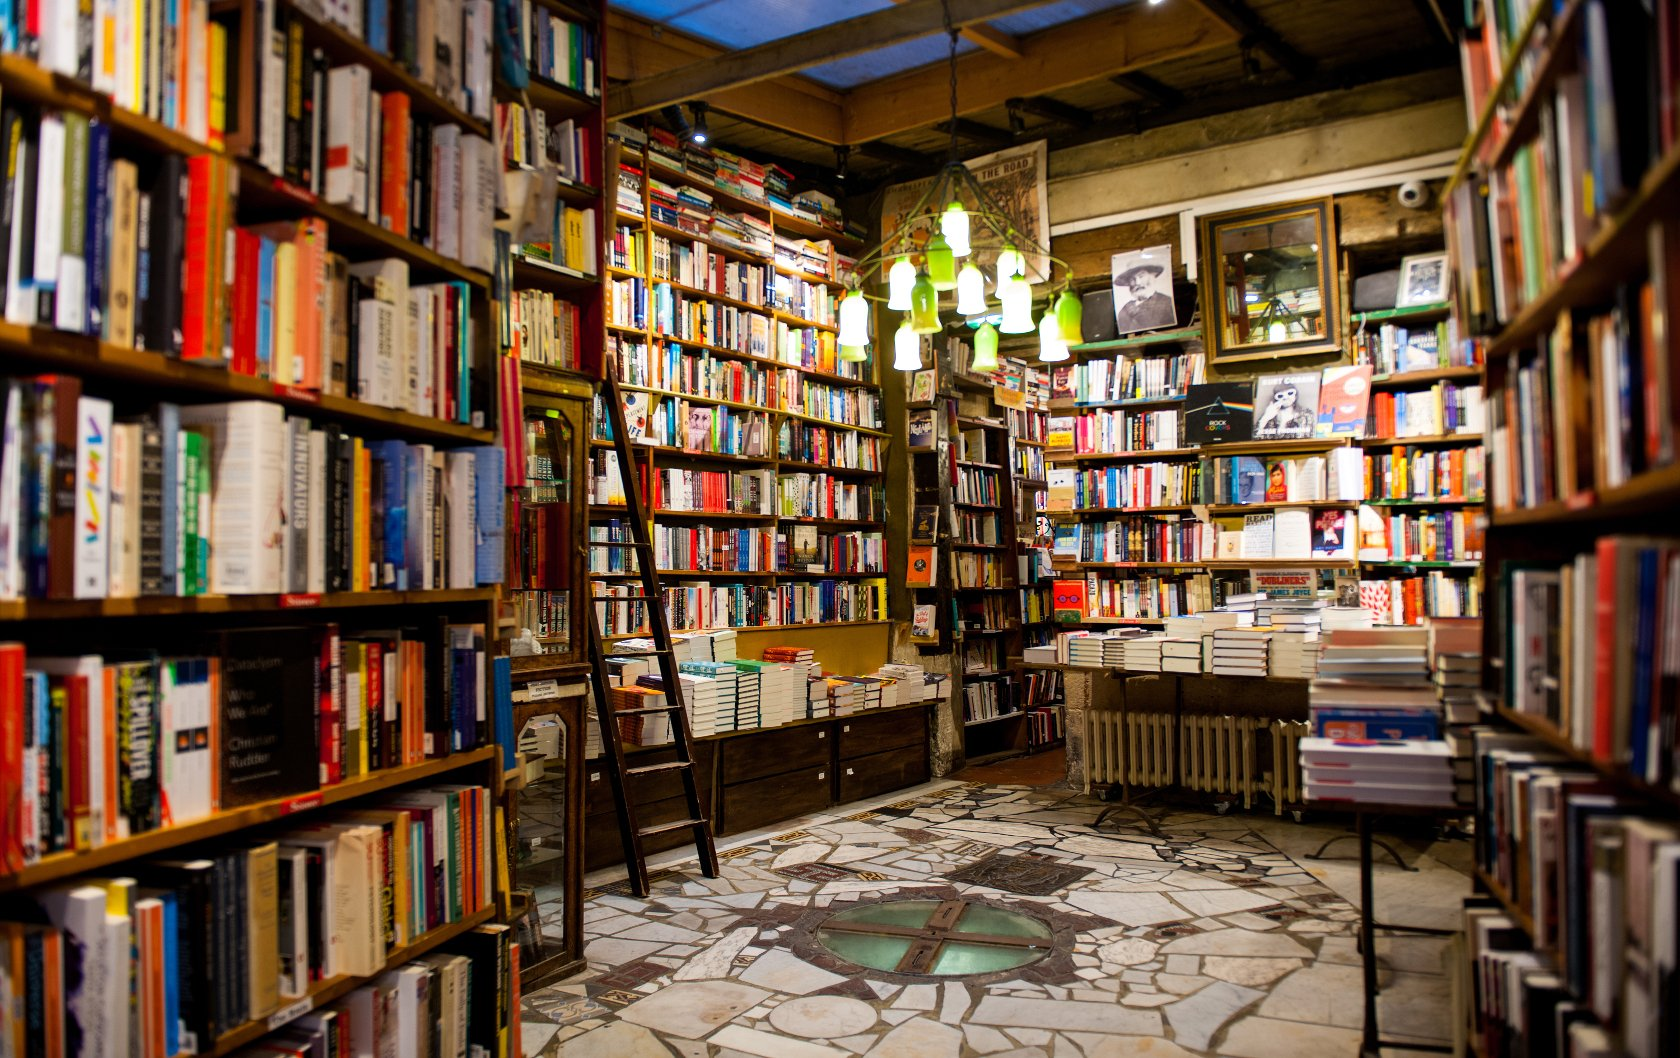 5 Bookstores Every Book Lover Should Visit In Paris